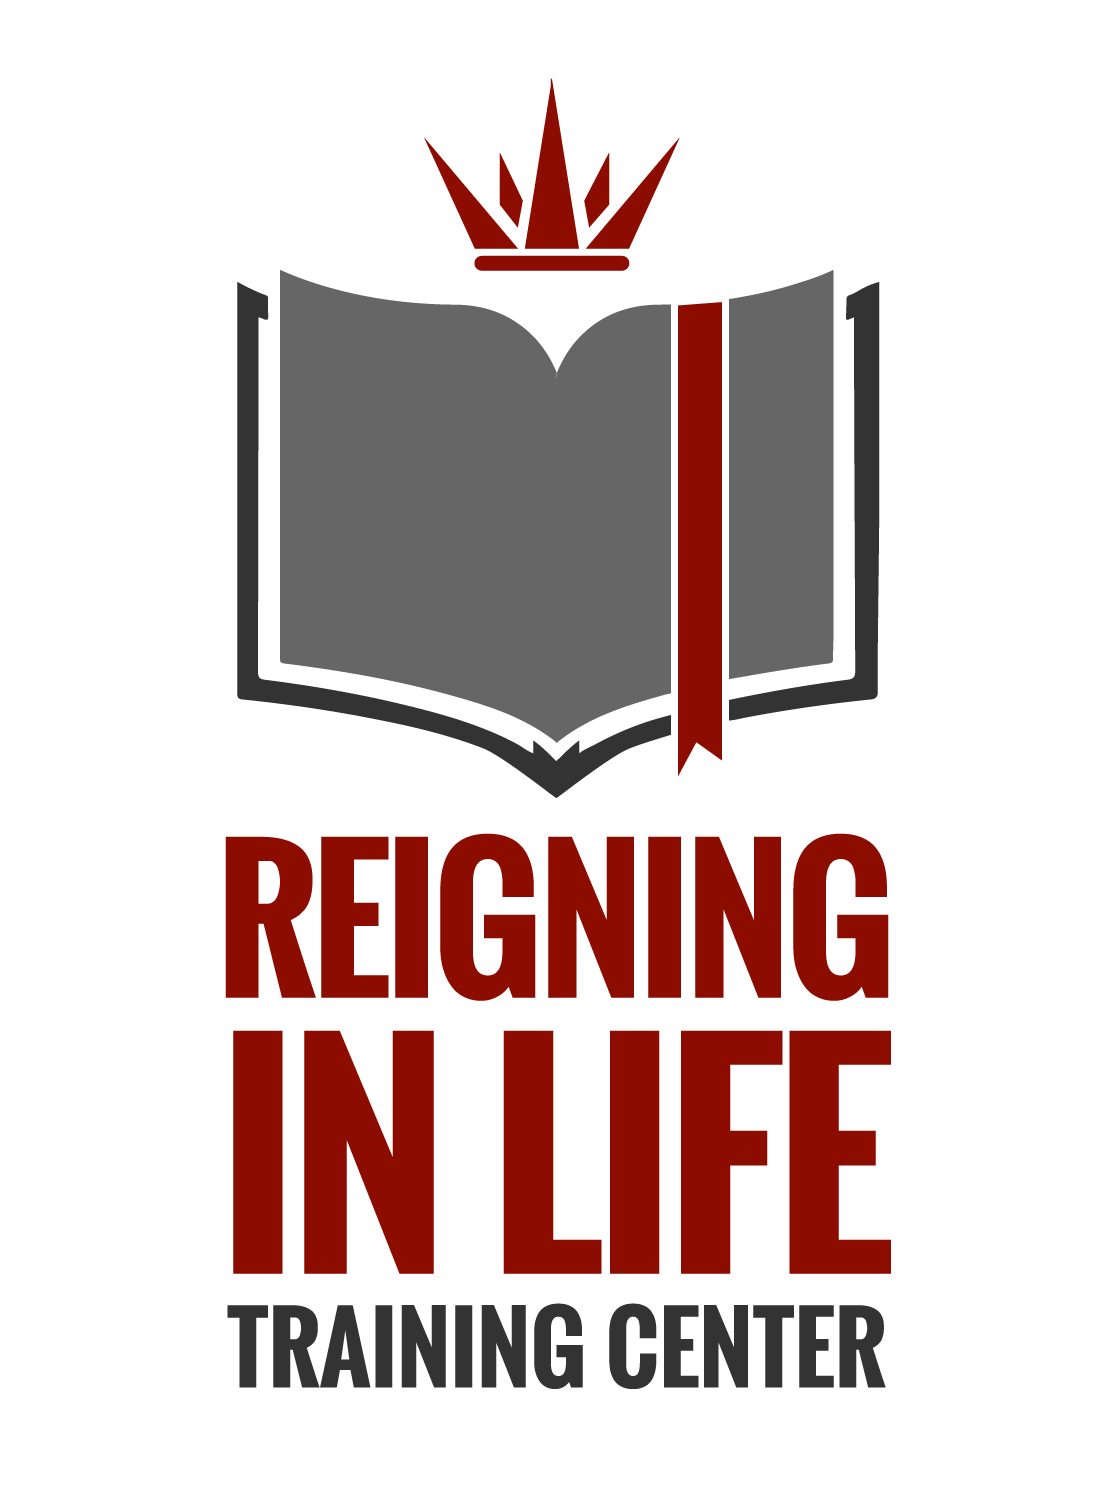 reigning-in-life-traning-center-Logo-design-FINAL_FULL